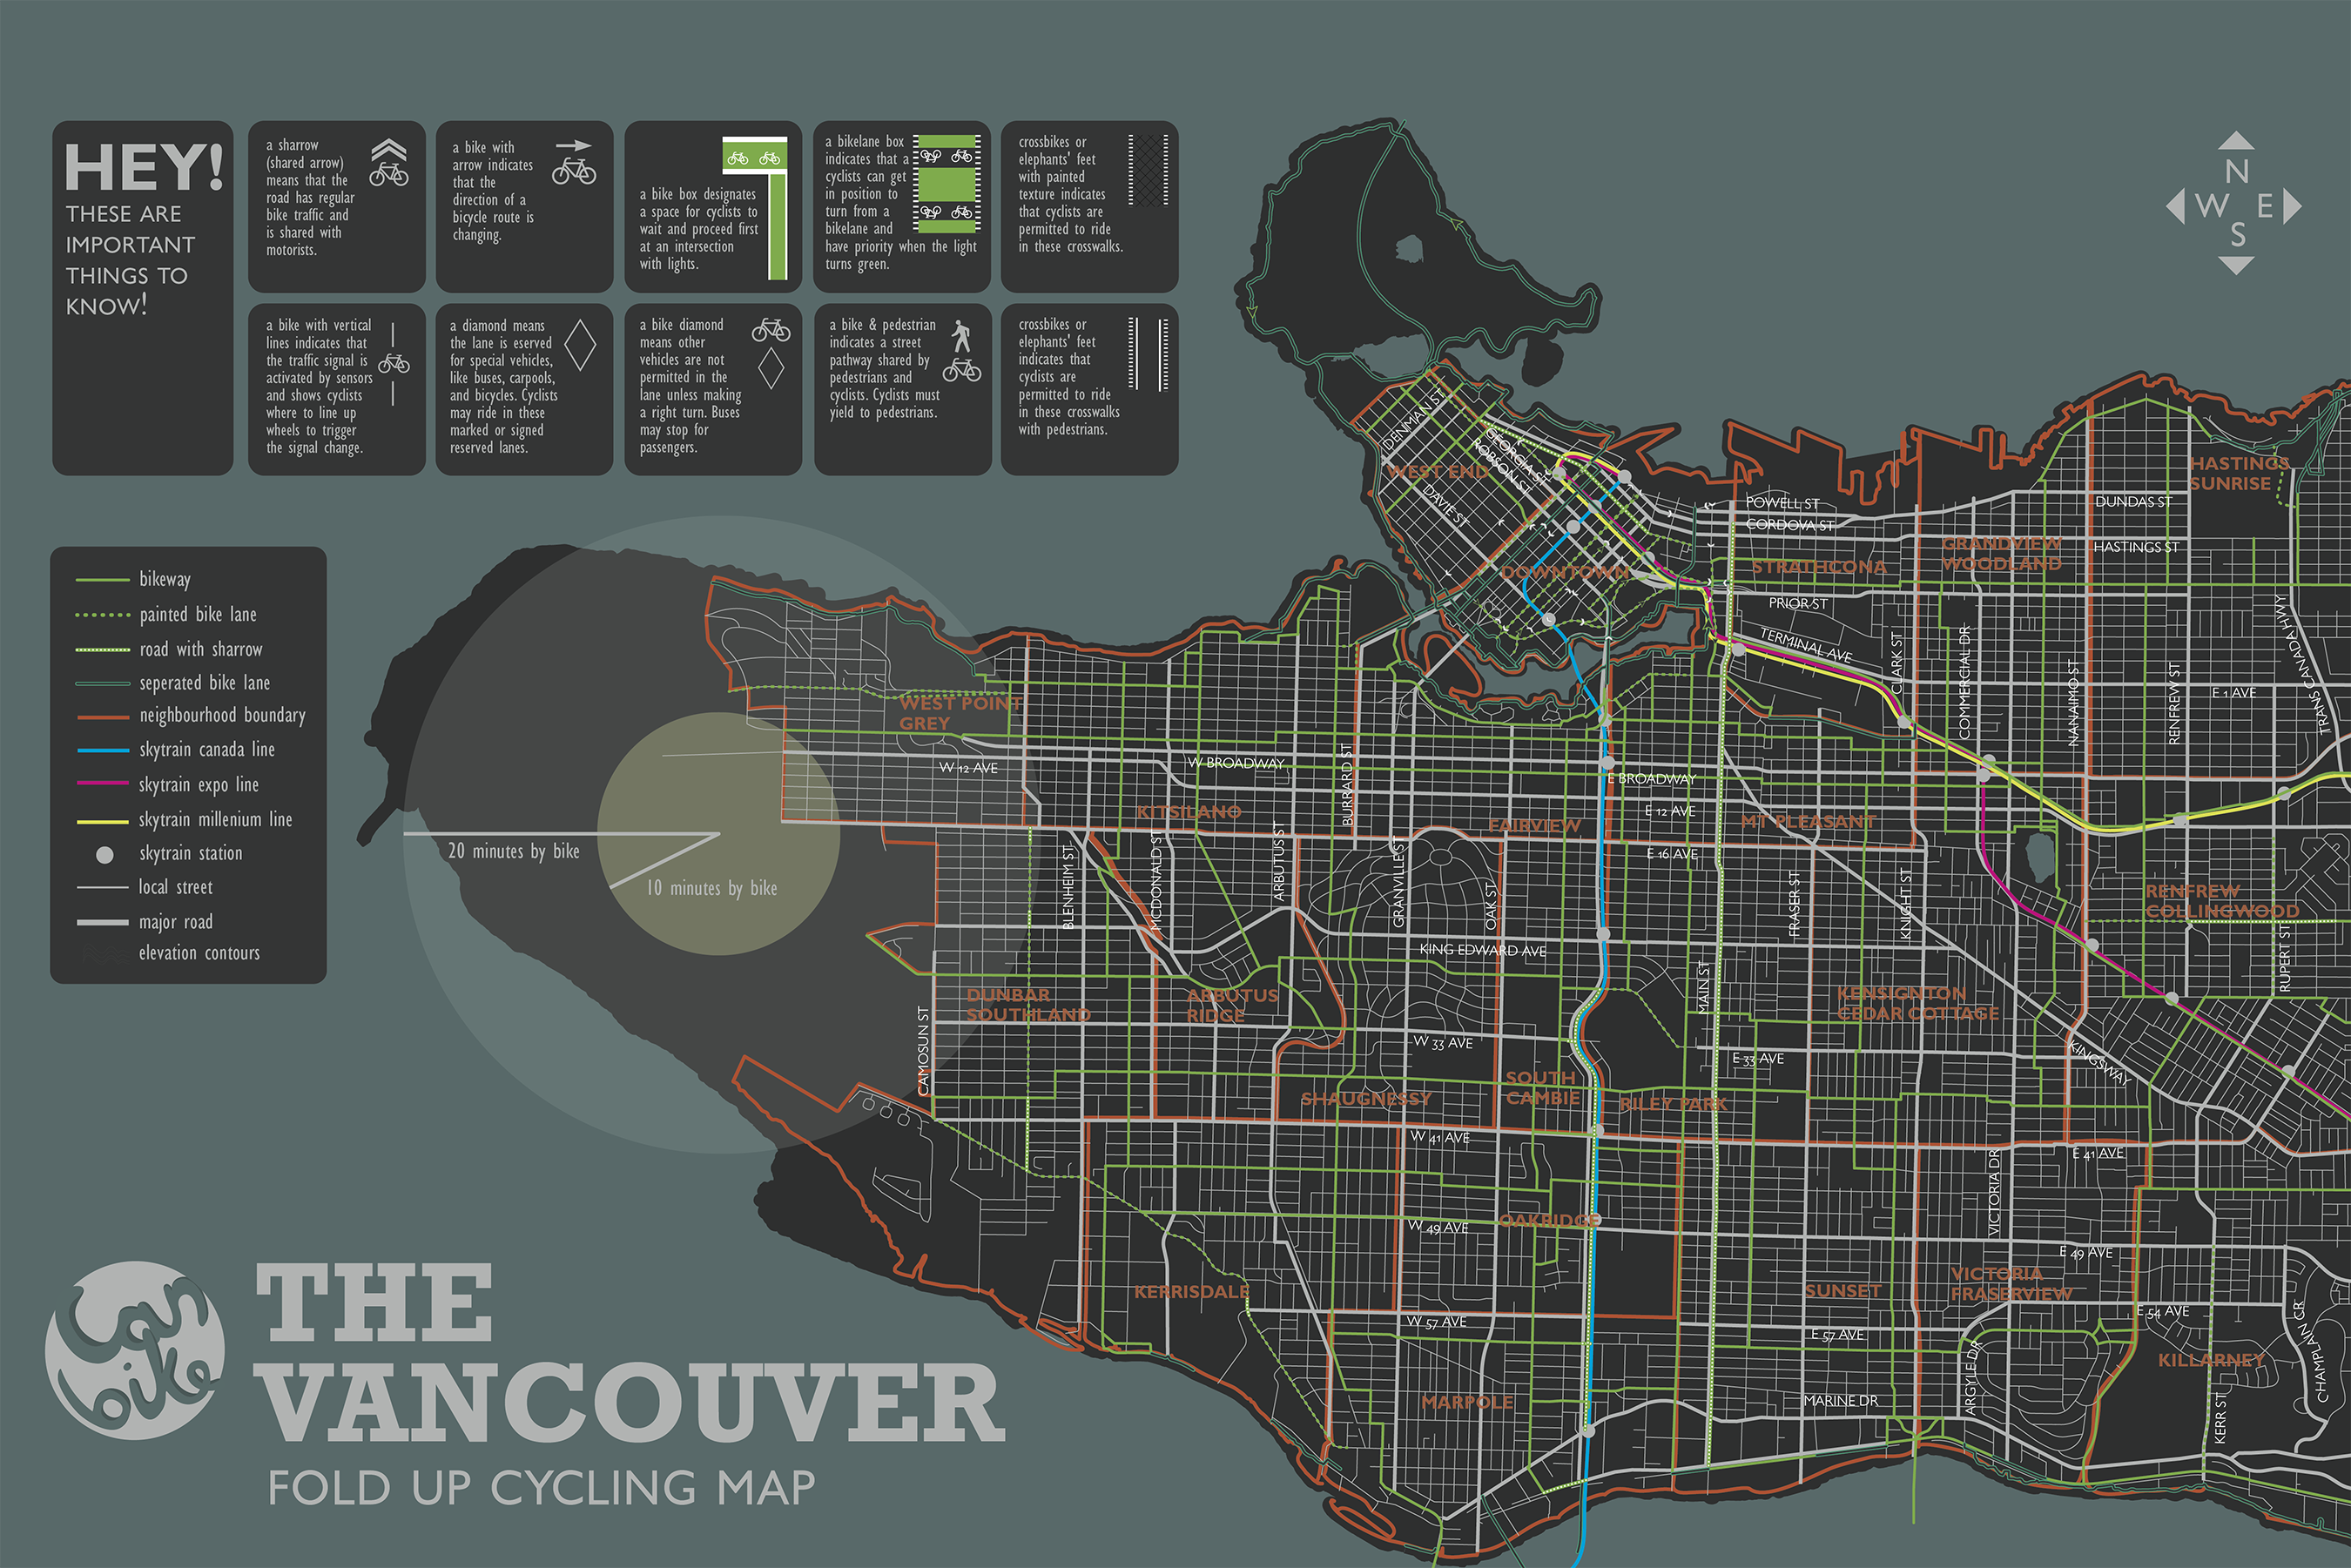 Color printing downtown vancouver - A Print Media Map Of Vancouver S Alternative Transport Network Including Cycling And Train Infrastructure Interactive